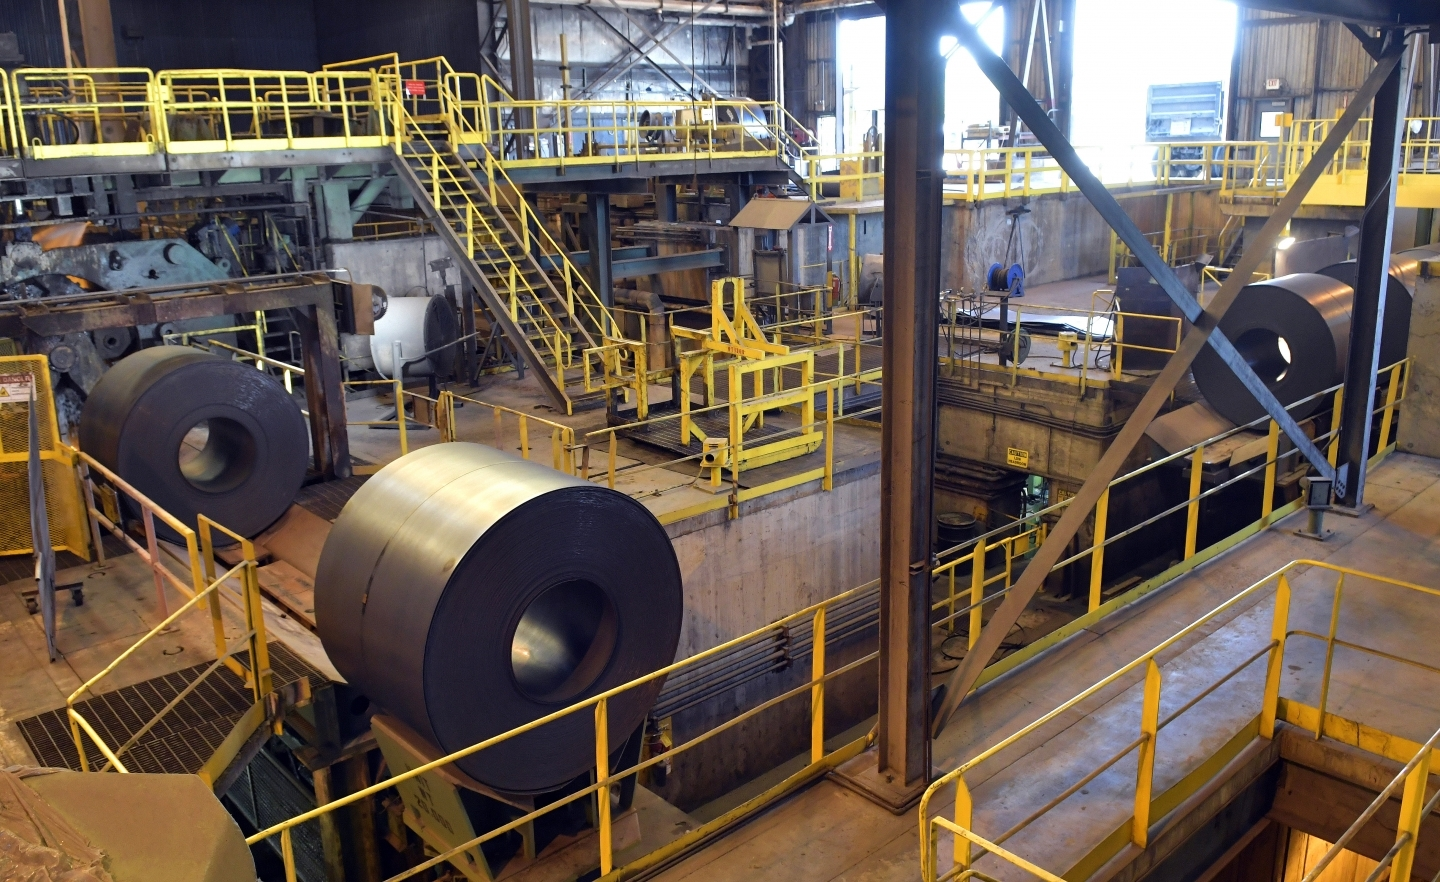 New rolls of sheet steel exit the spooling machine, and head off to cool down at the NUCOR Steel Gallatin plant on July 25, 2018, in Ghent, Kentucky. (AP Photo/Timothy D. Easley)